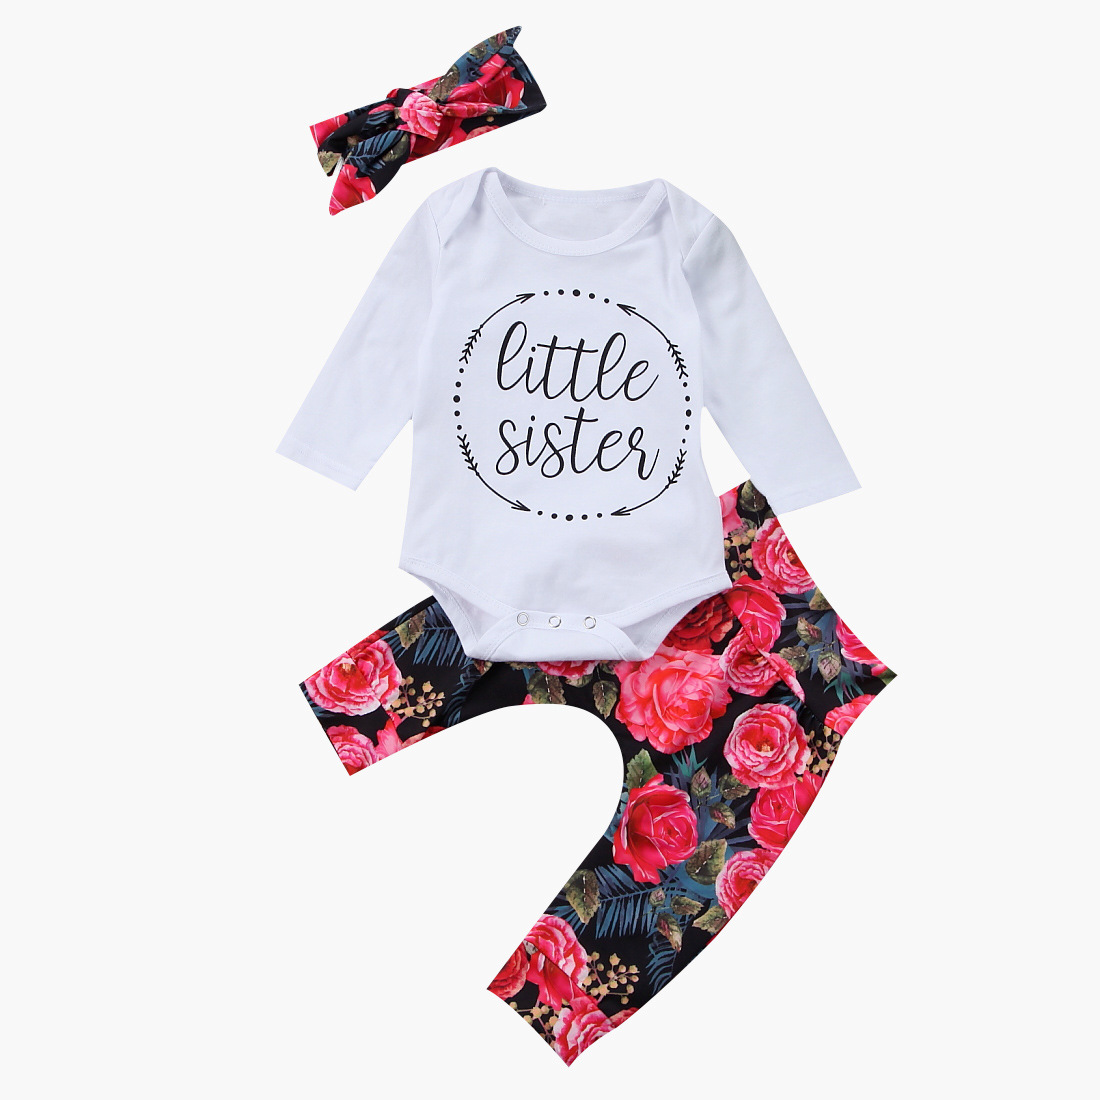 Fashion Baby Girls Clothing Autumn Baby Set Cotton White Baby Romper Floral Pants Headbands 3pcs Infant Outfits Newbron Clothes